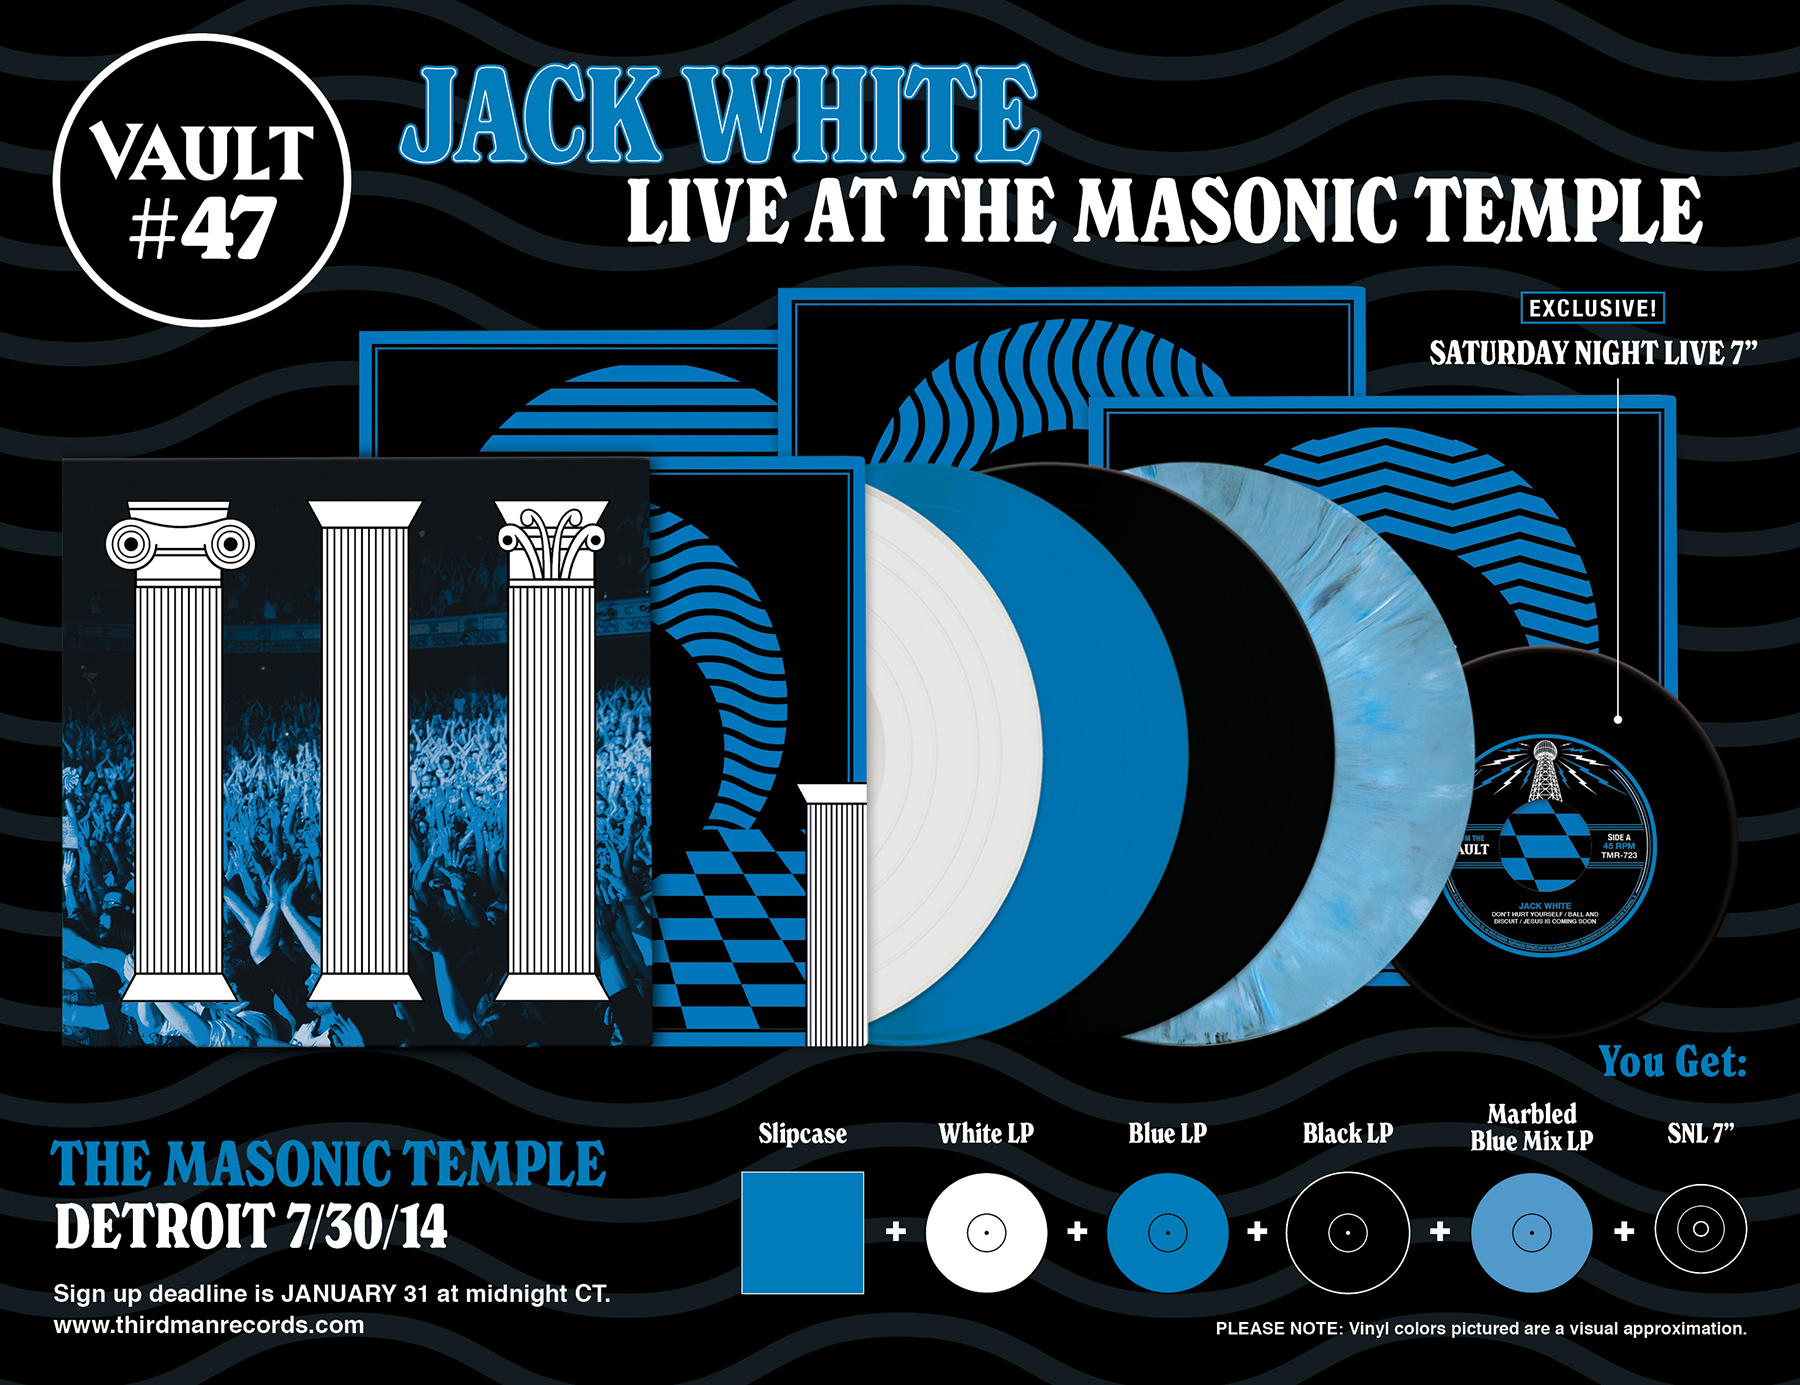 Vault 47 Jack White Live At the Masonic Temple